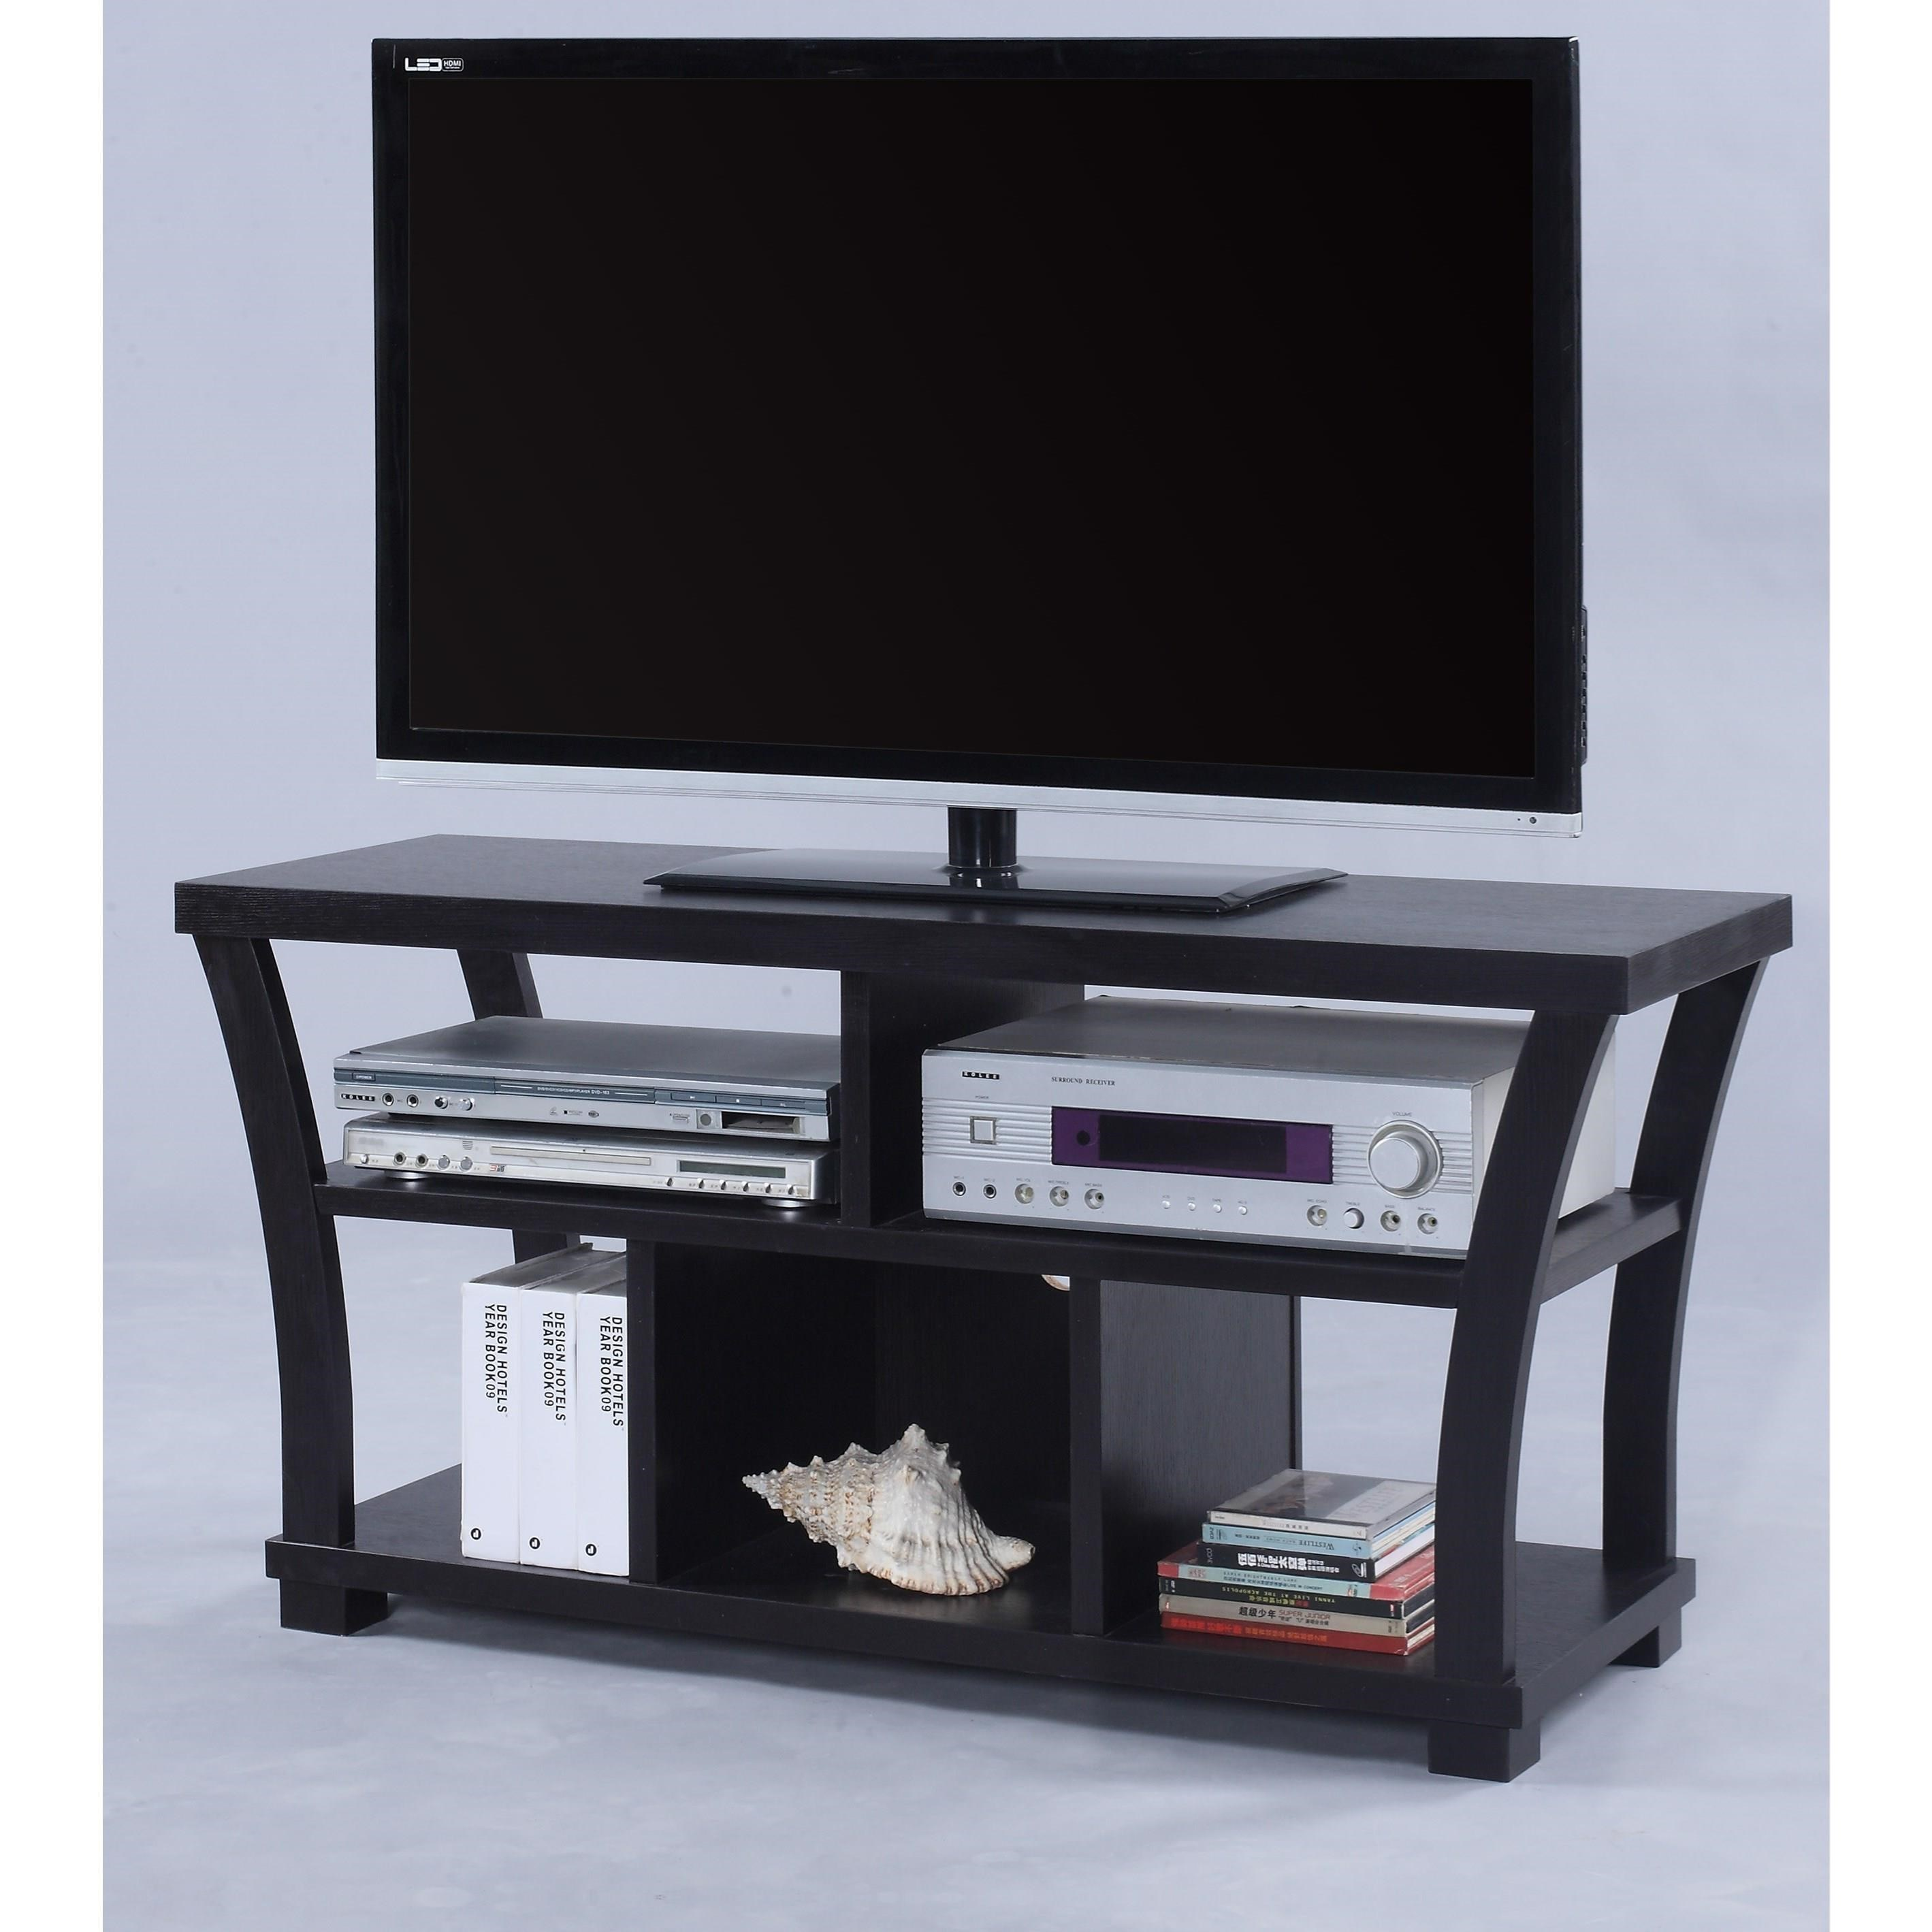 Draper TV Stand by Crown Mark at Darvin Furniture